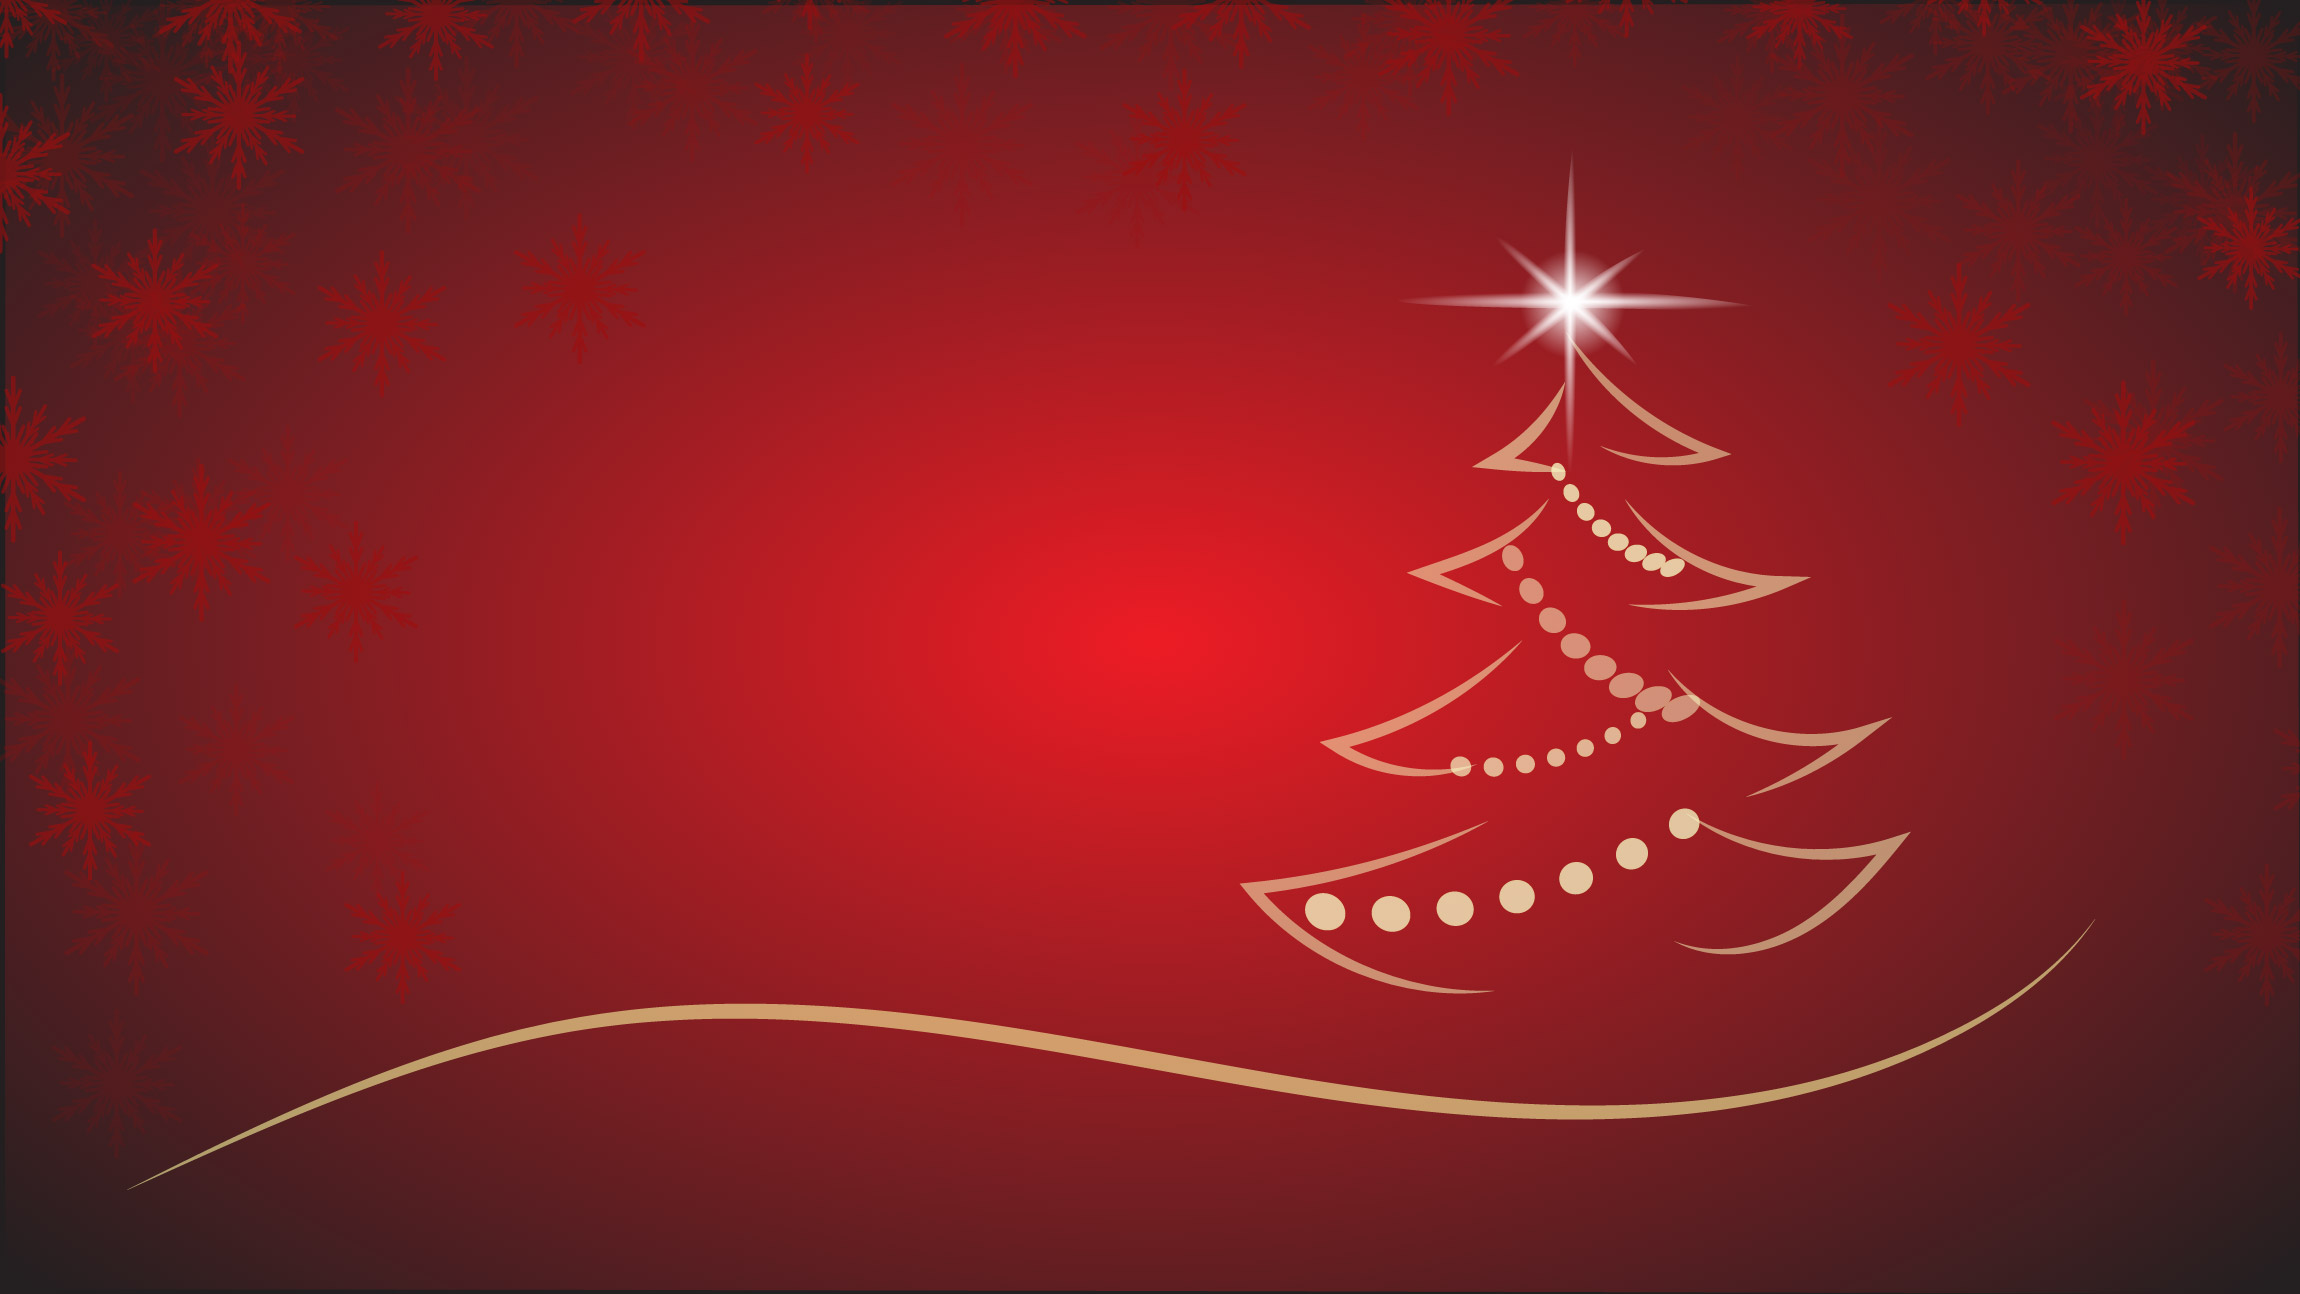 Cool Red Wallpaper Christmas Background Hd Images